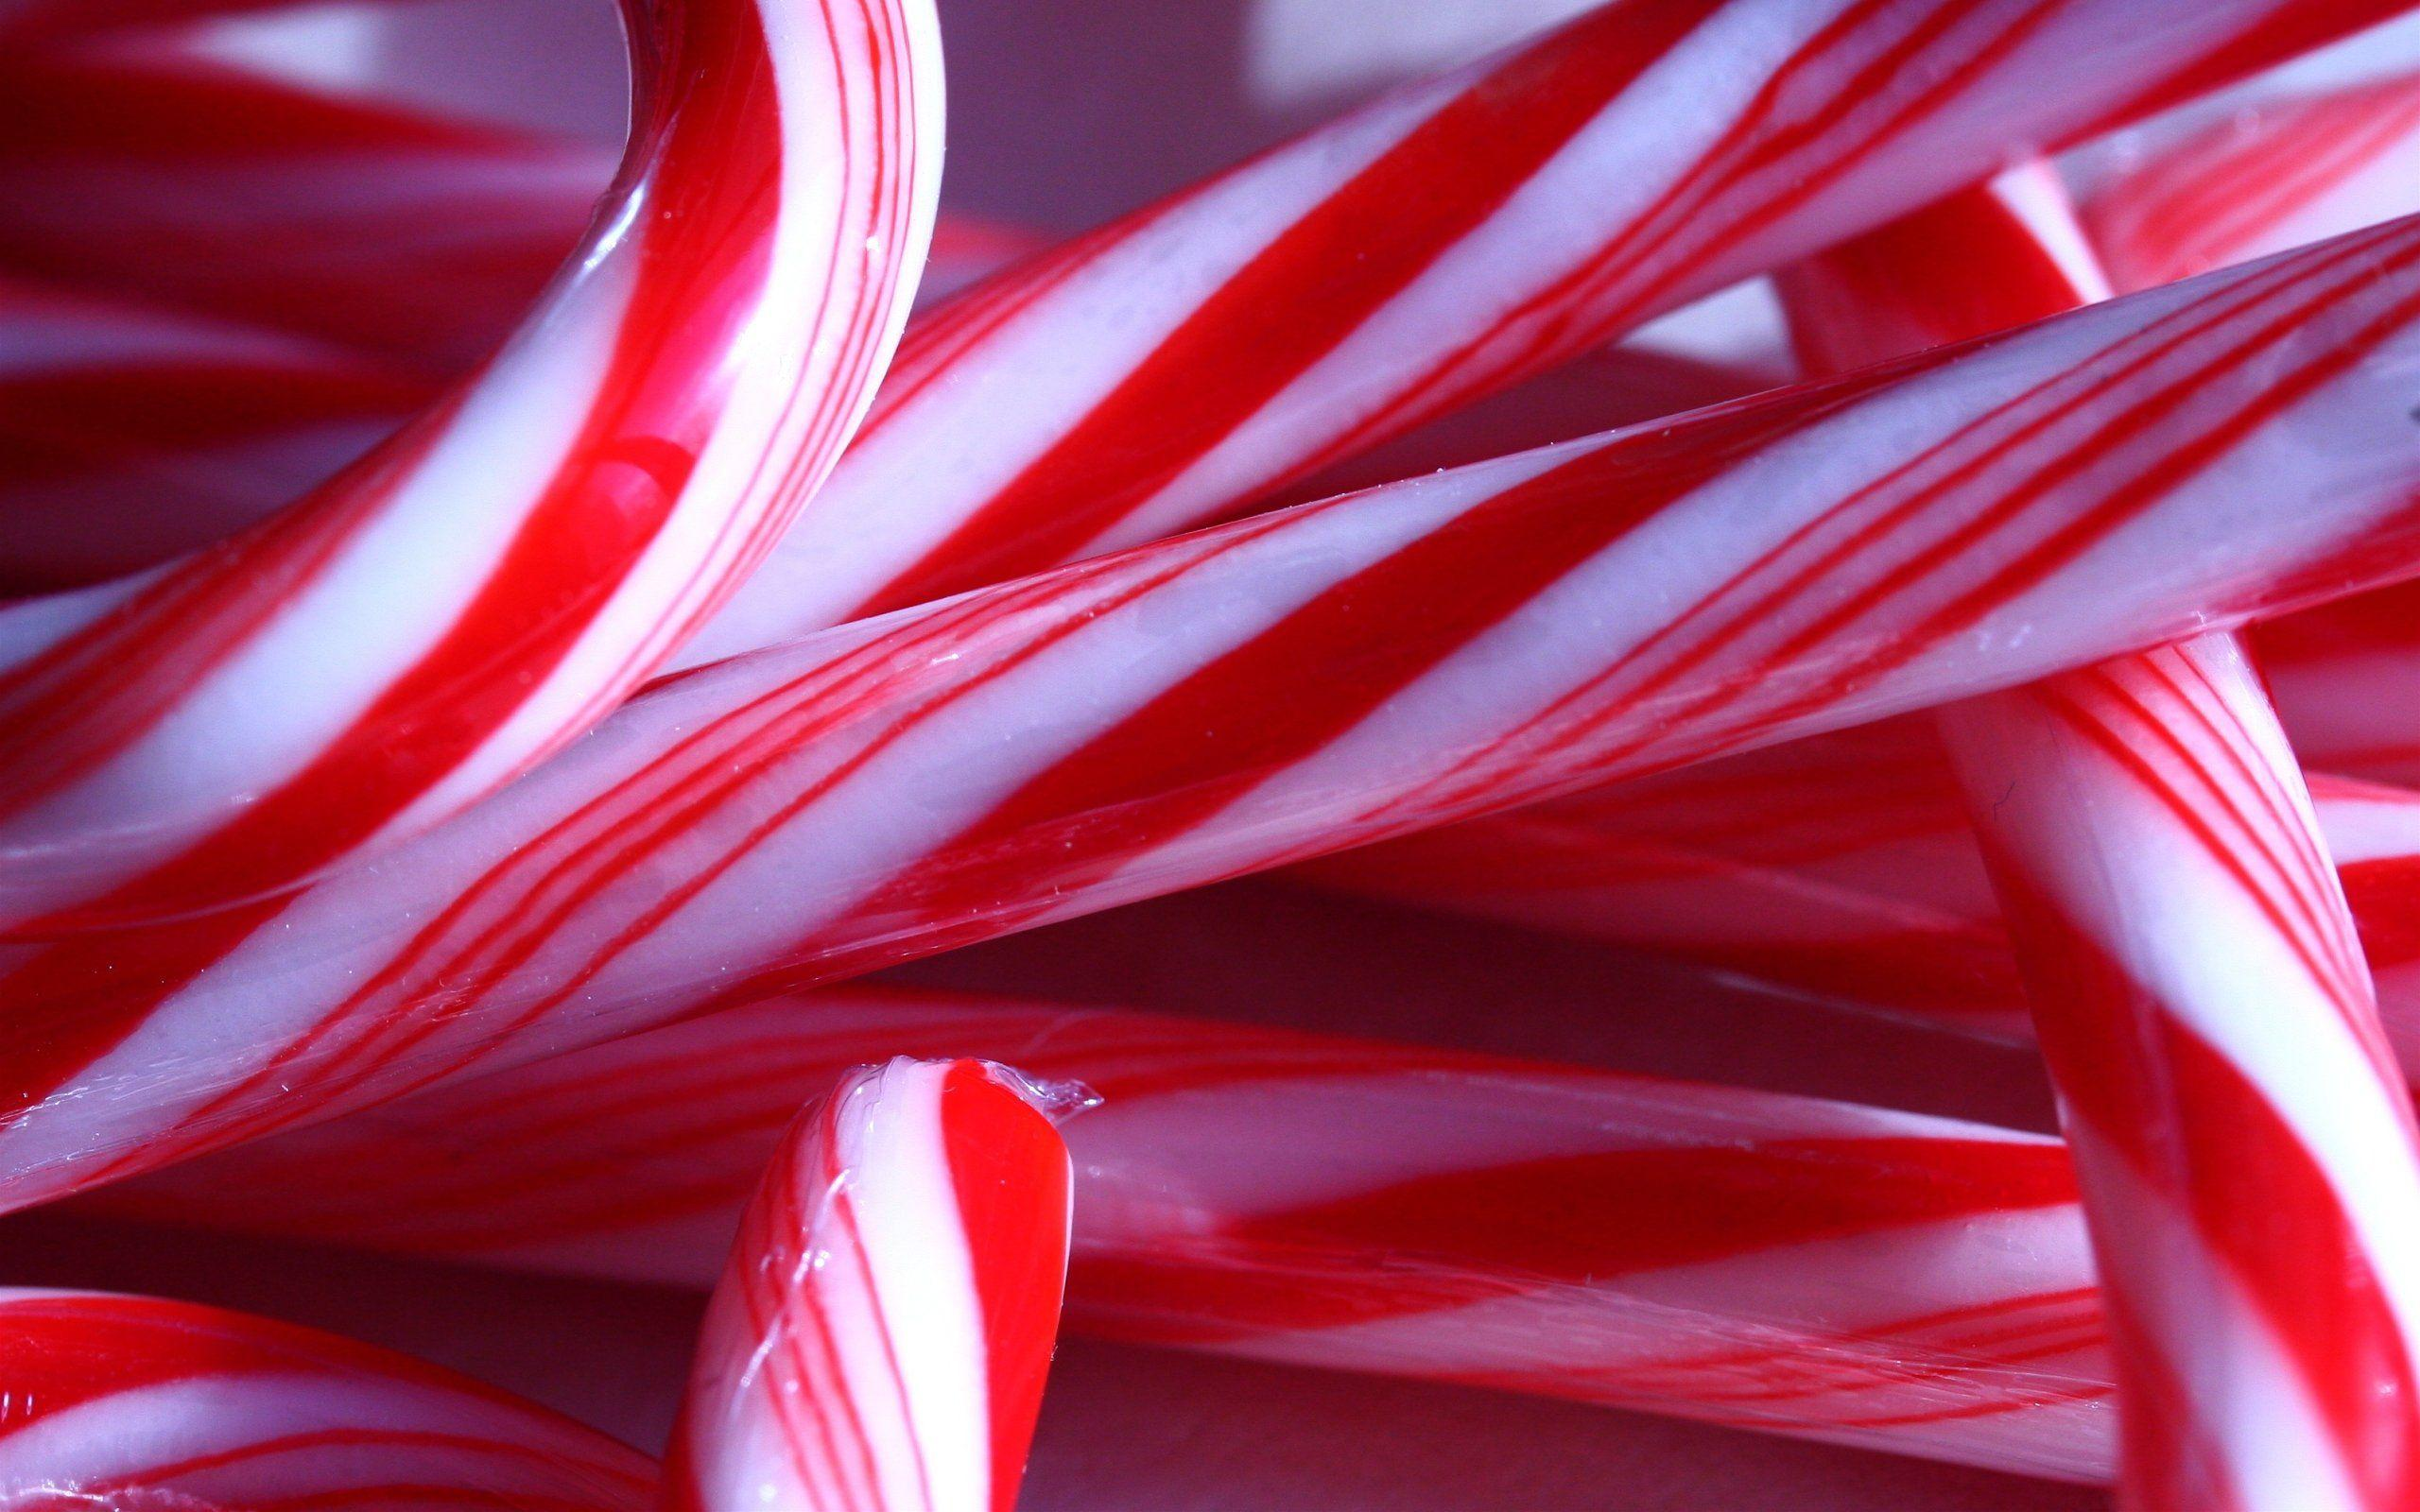 Candy Cane Up Close Wallpaper Backgrounds 52139 2560x1600 px